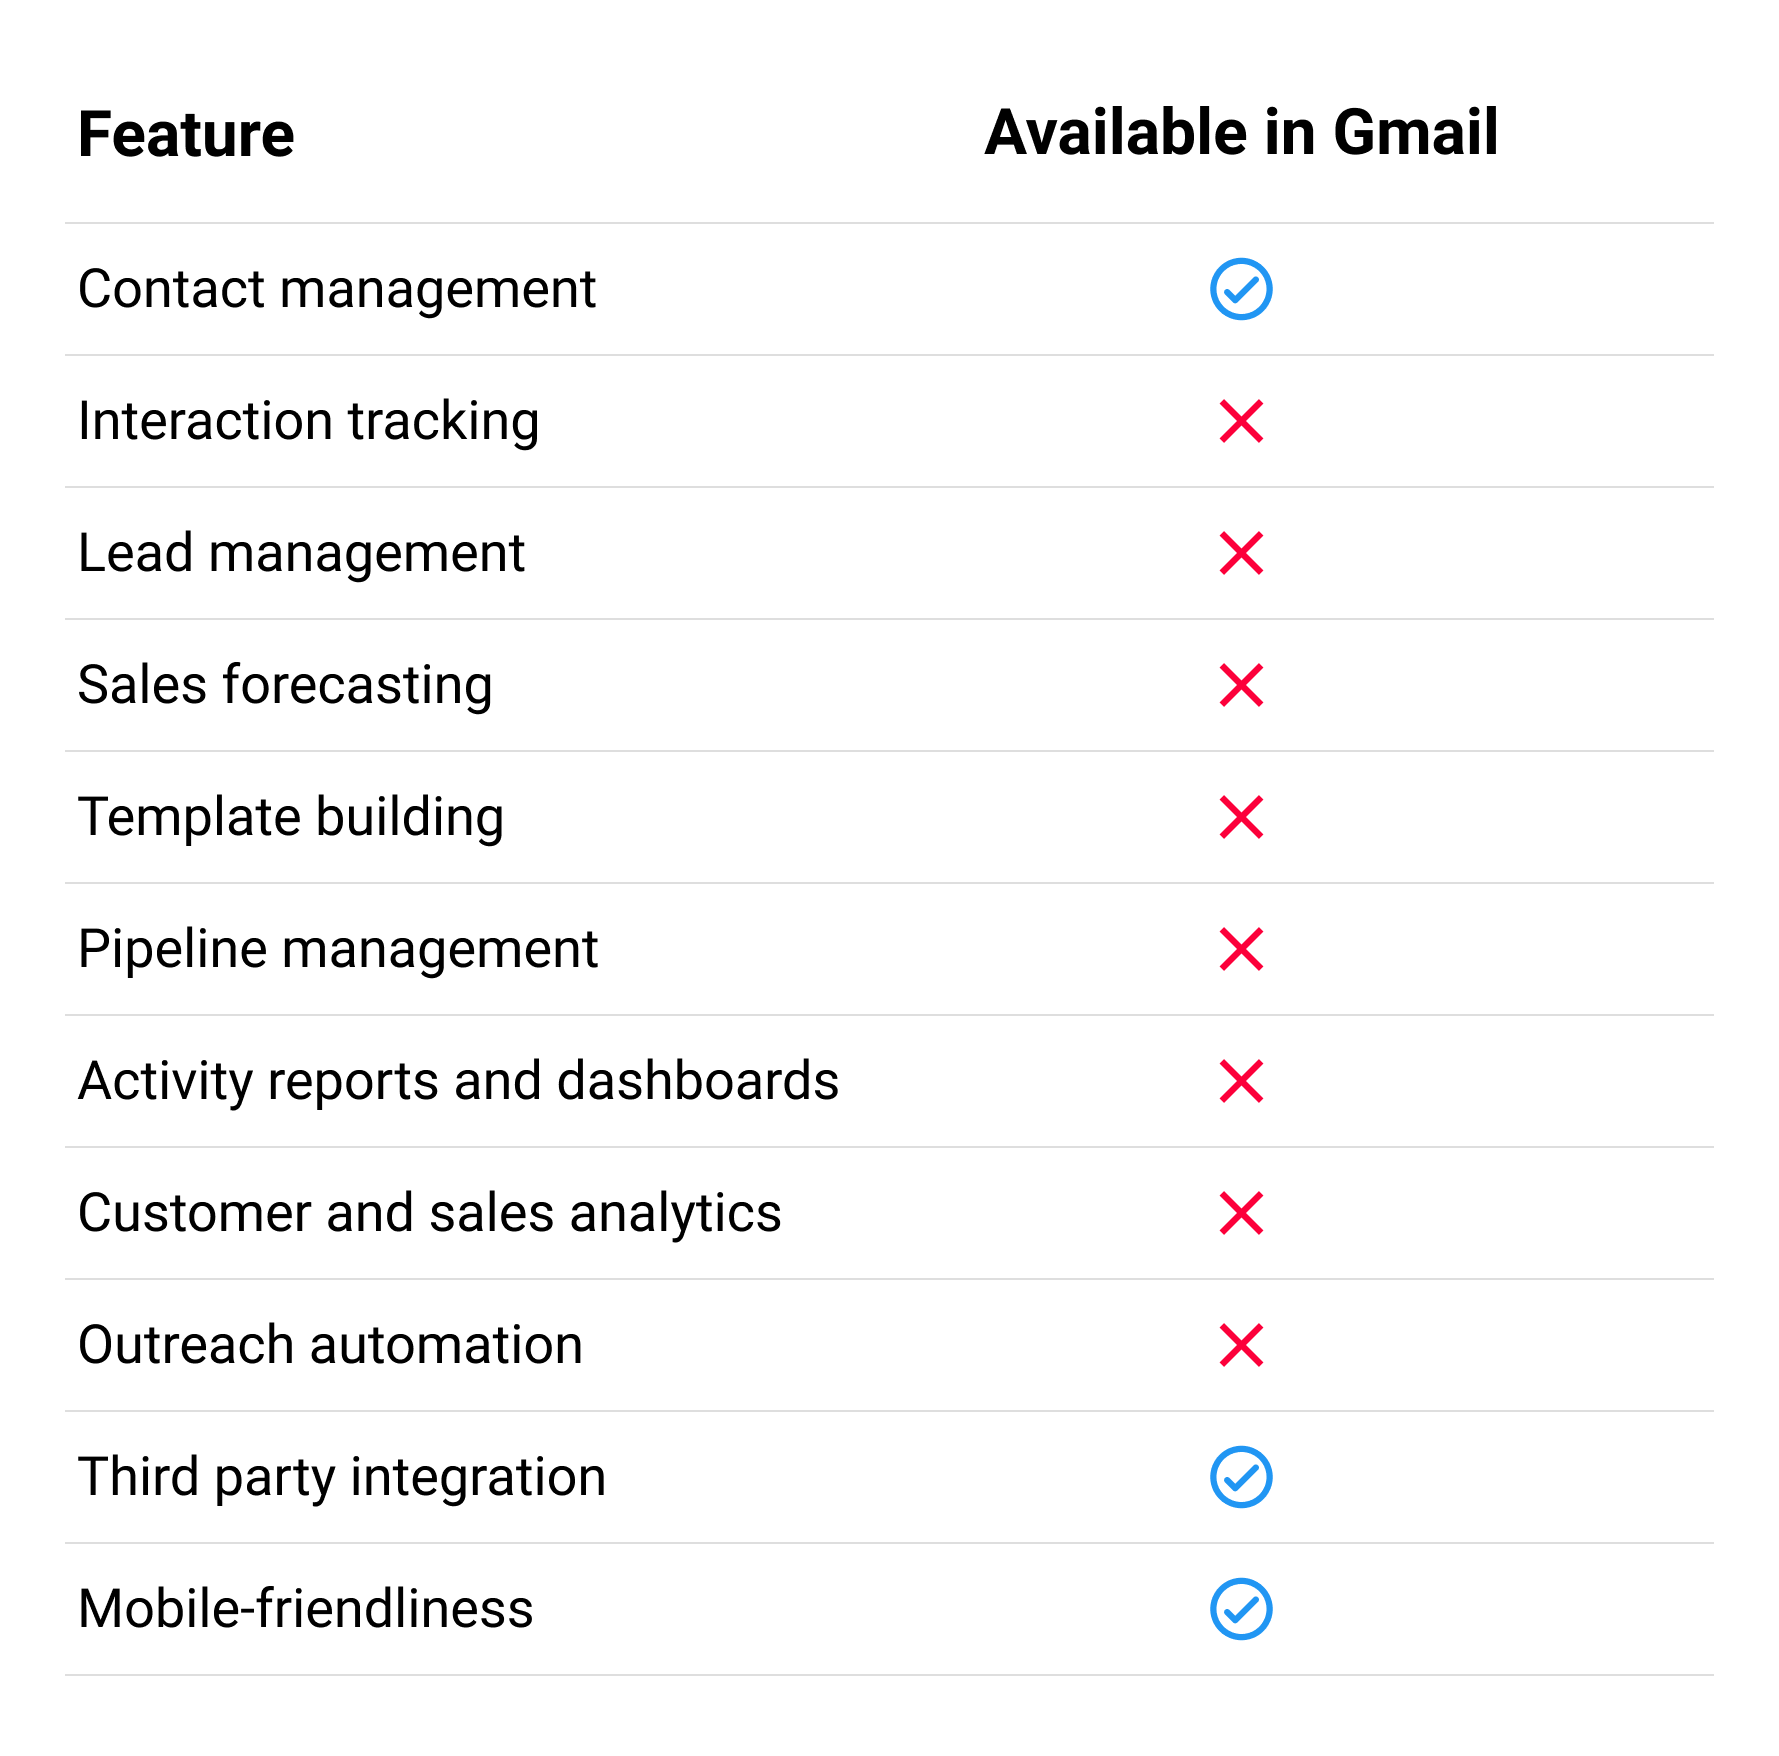 Gmail as a CRM